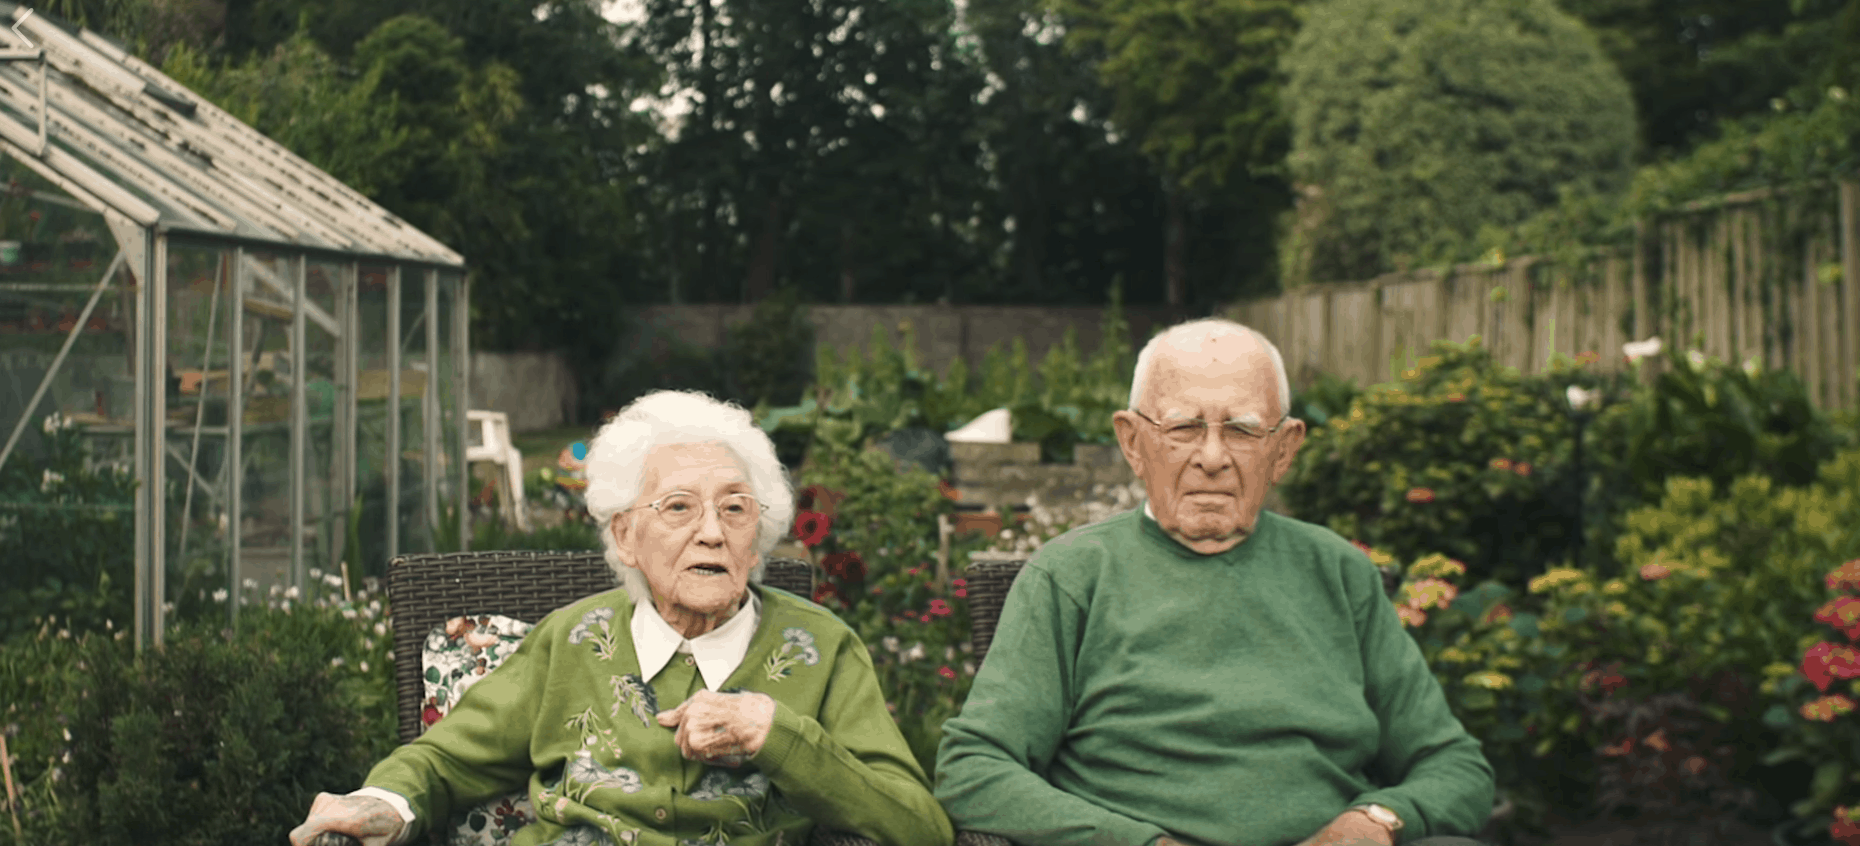 Irish couple 101 and 95 years old